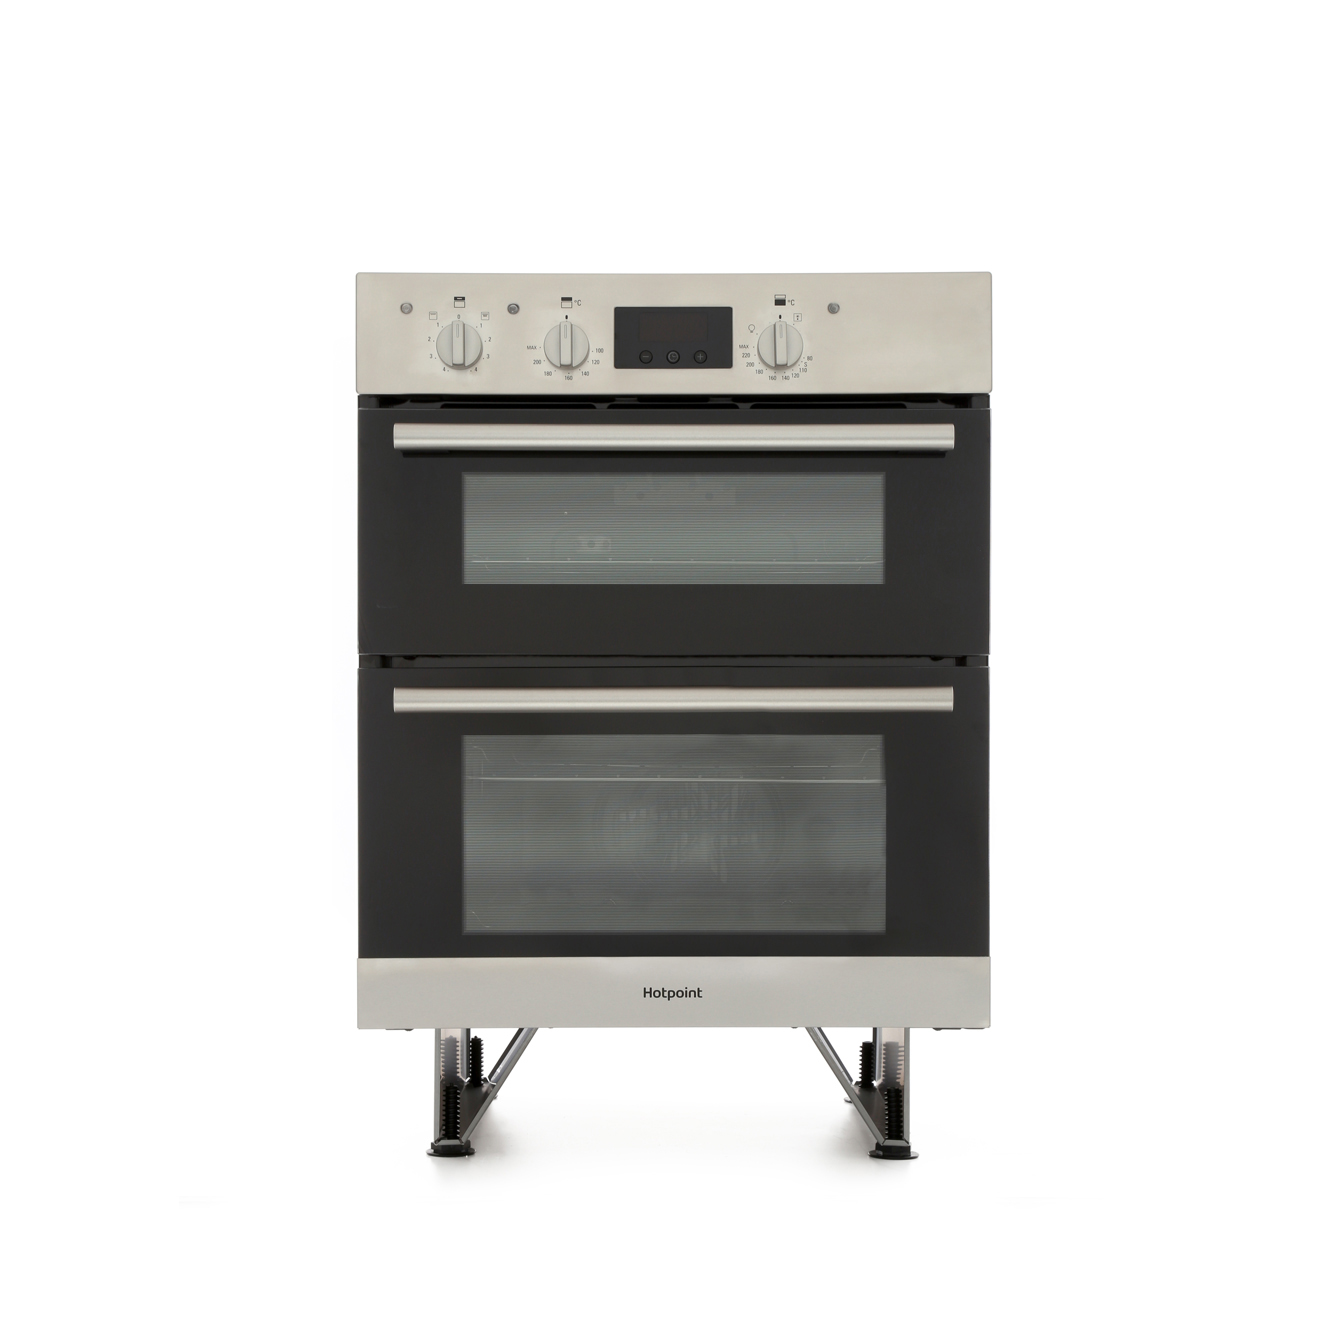 Buy Hotpoint DU2540IX Double Built Under Electric Oven - Stainless ...